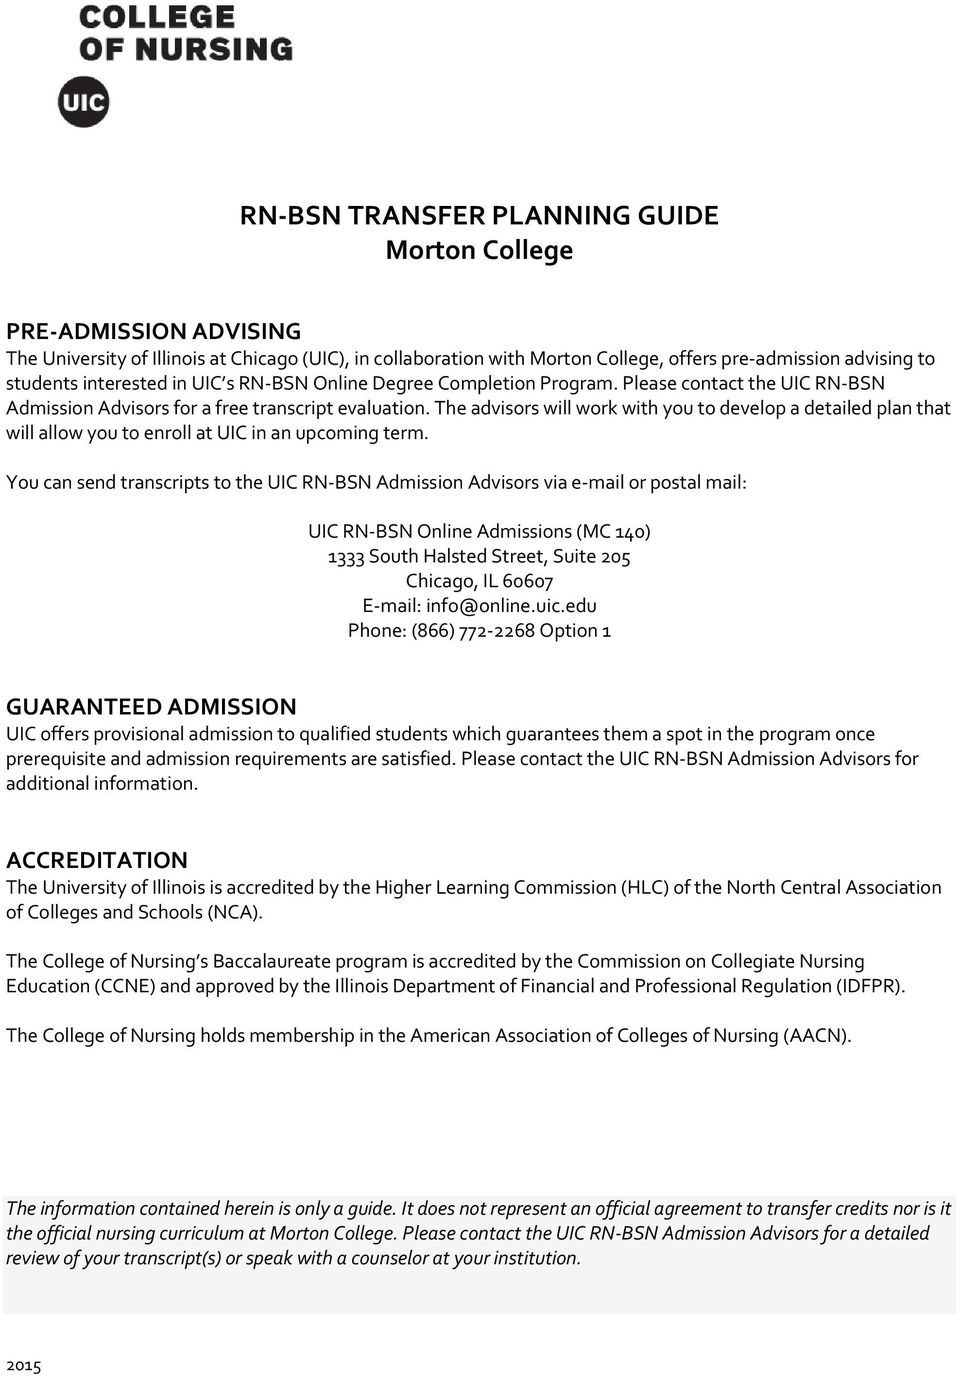 Transfer guide | uic admissions.